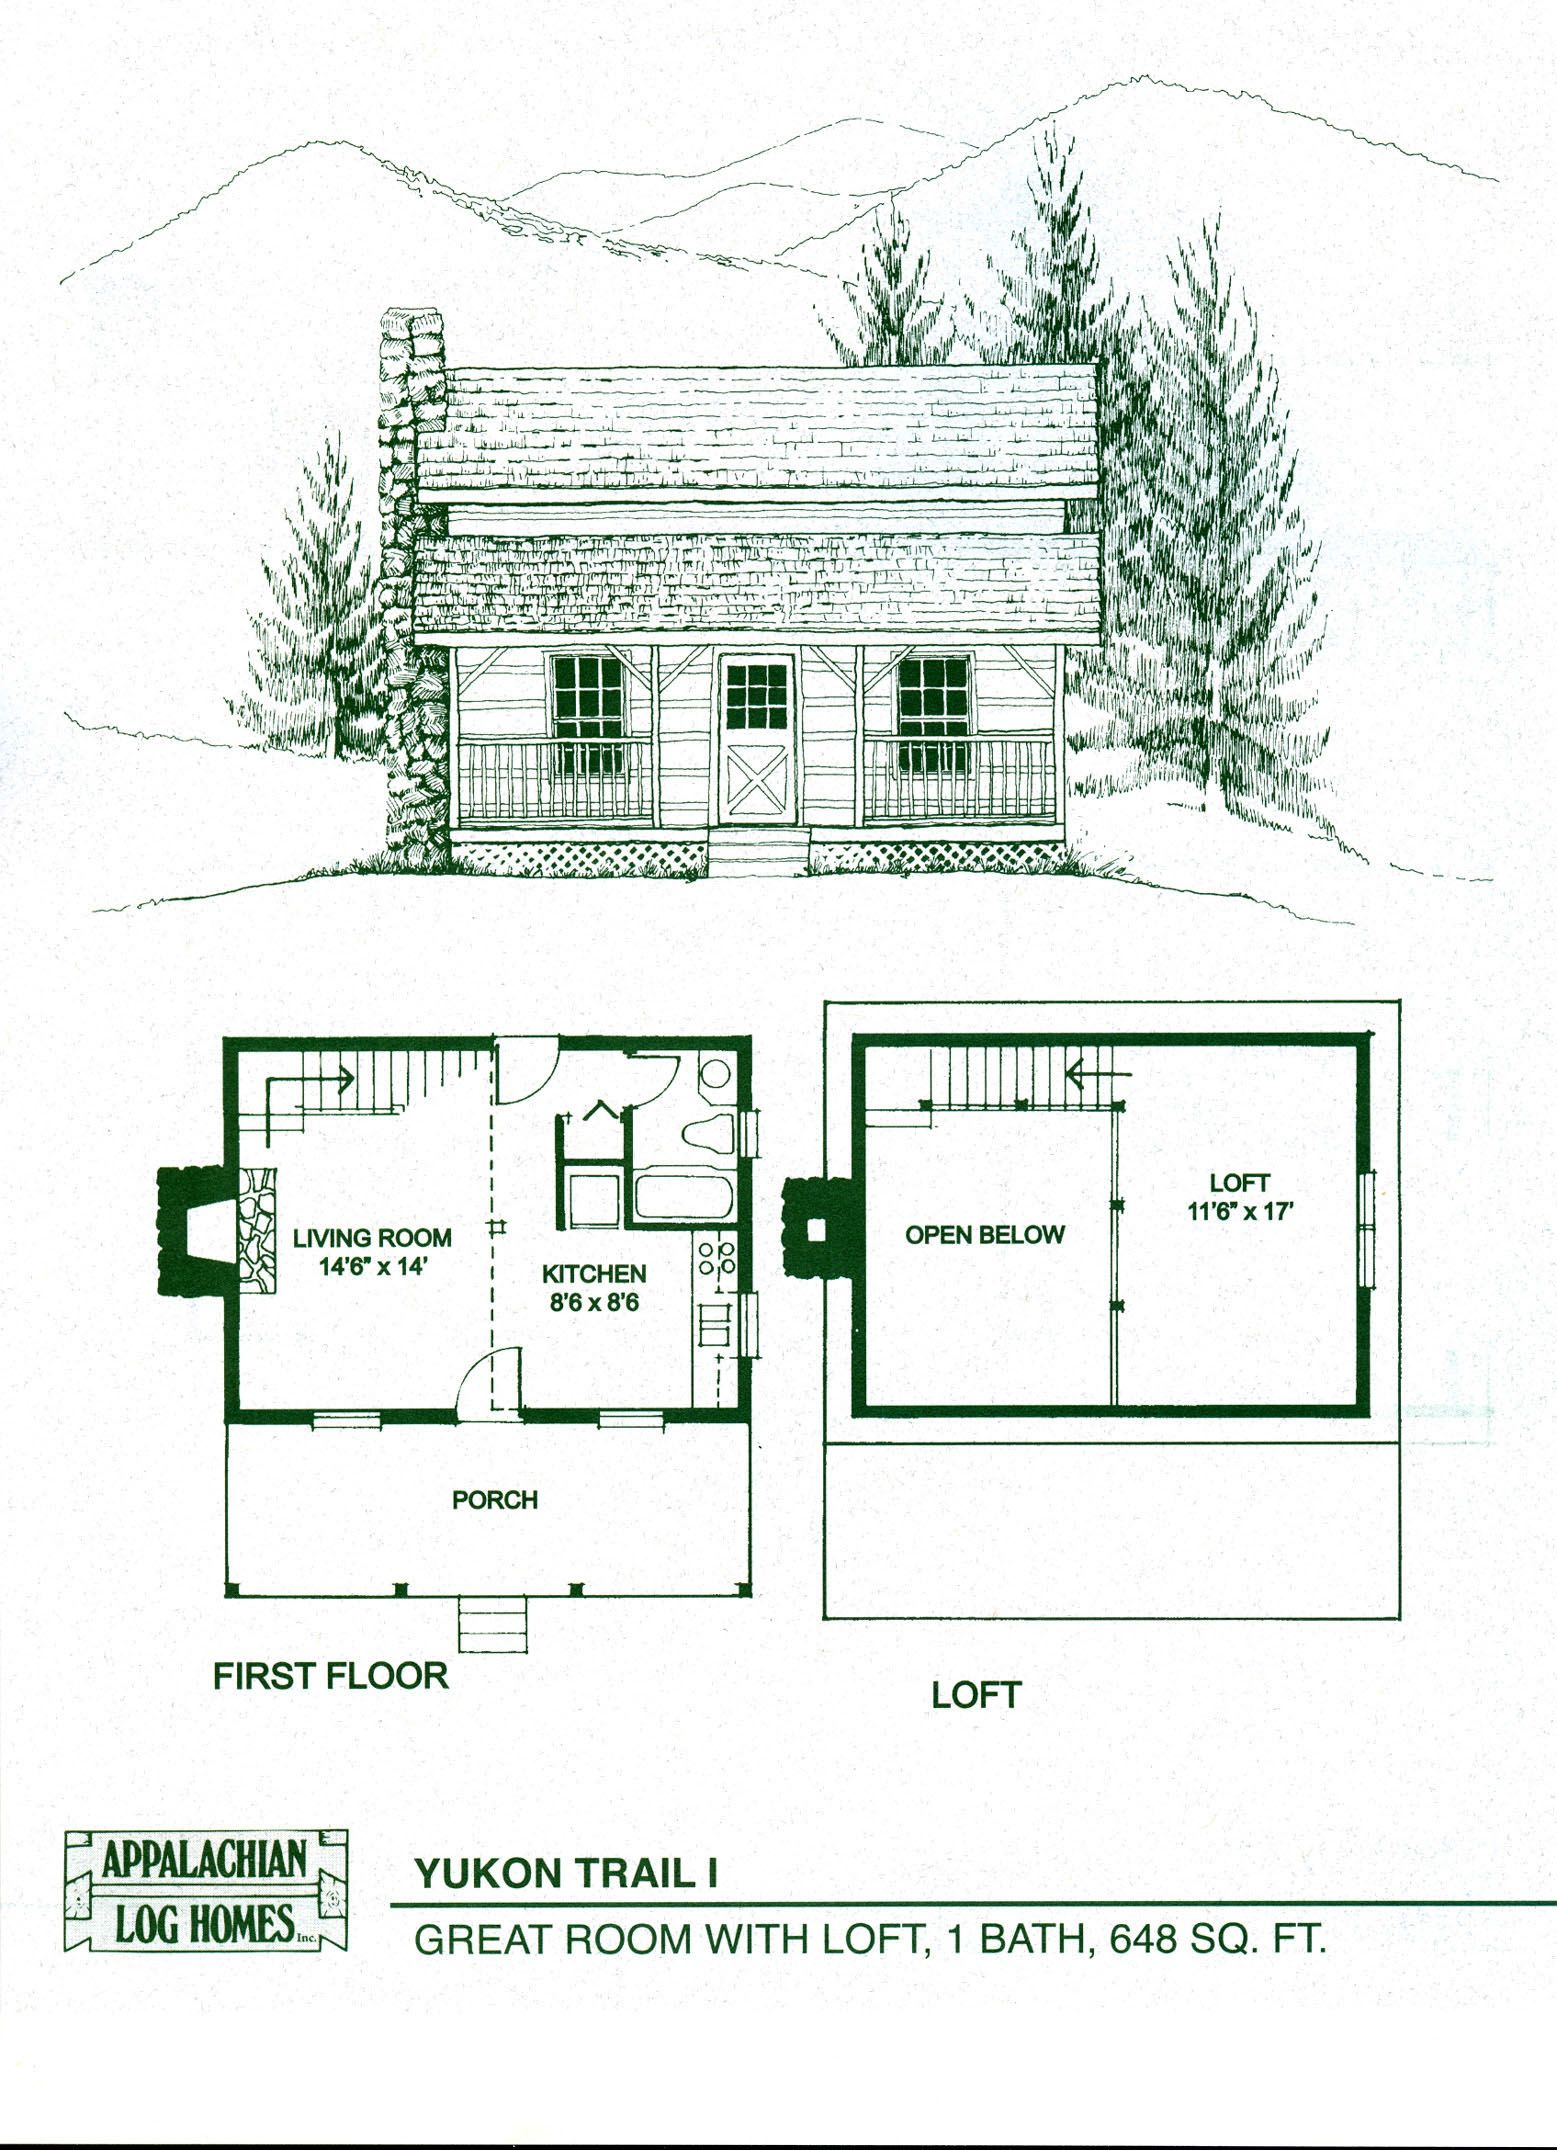 Log home floor plans log cabin kits appalachian log for Small cottage plans